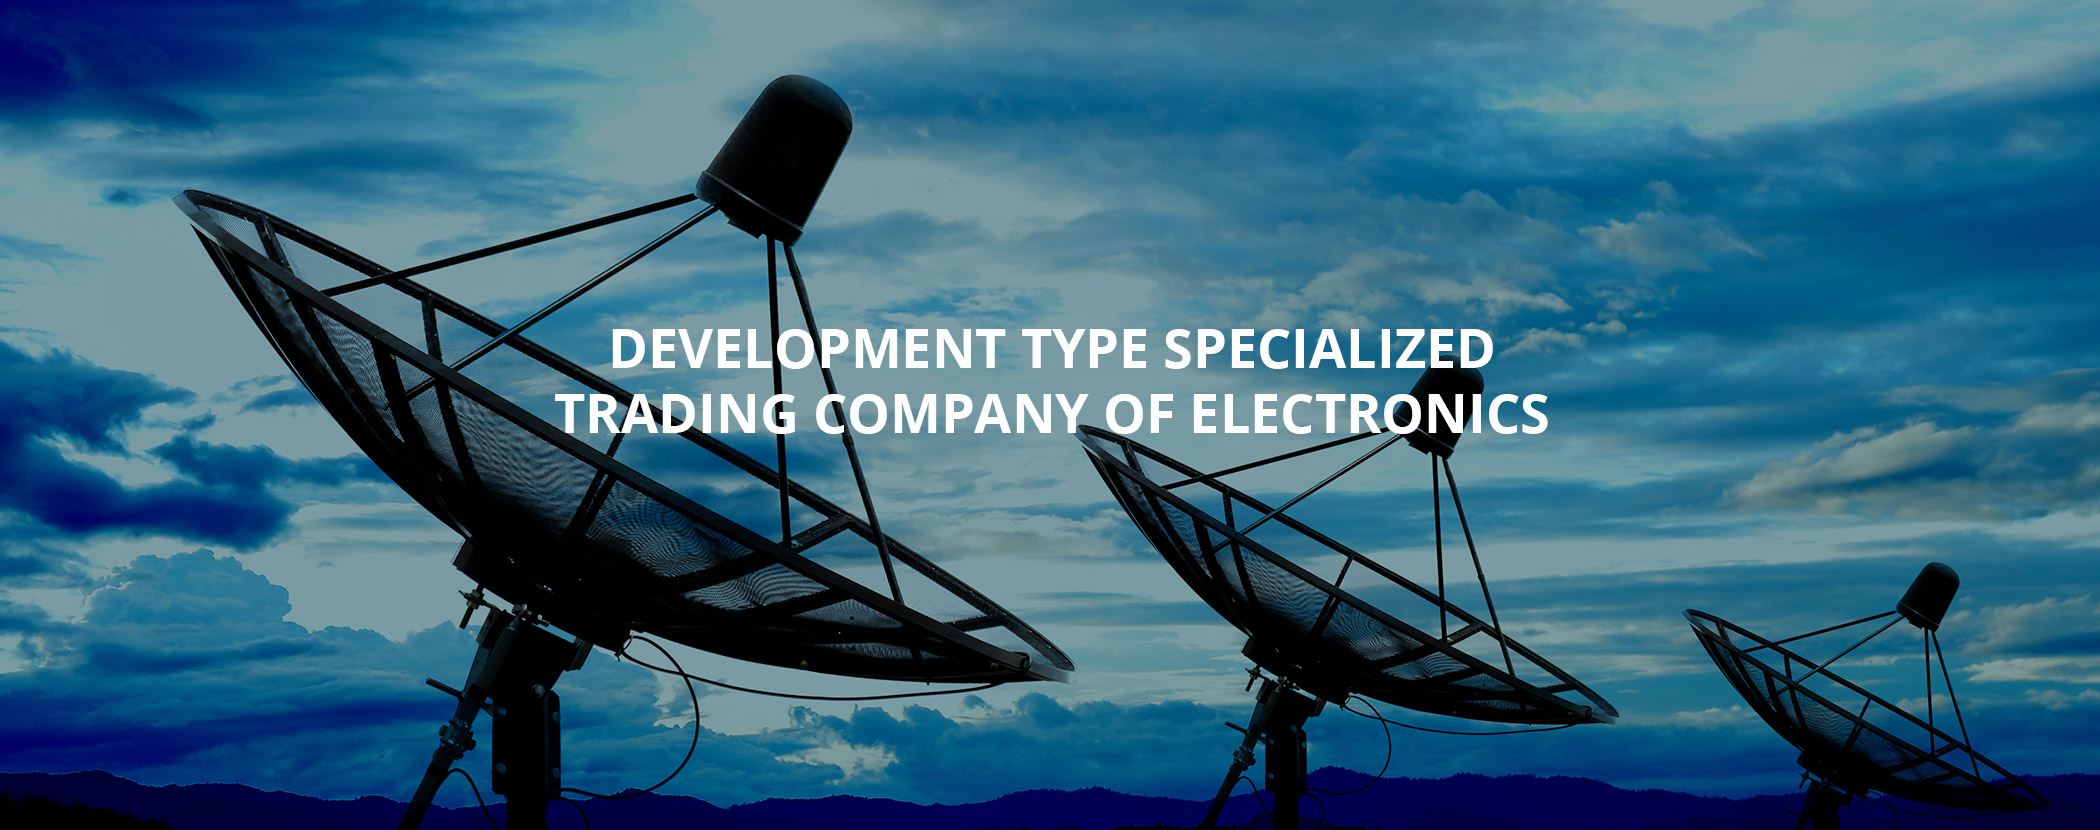 Development type specialized